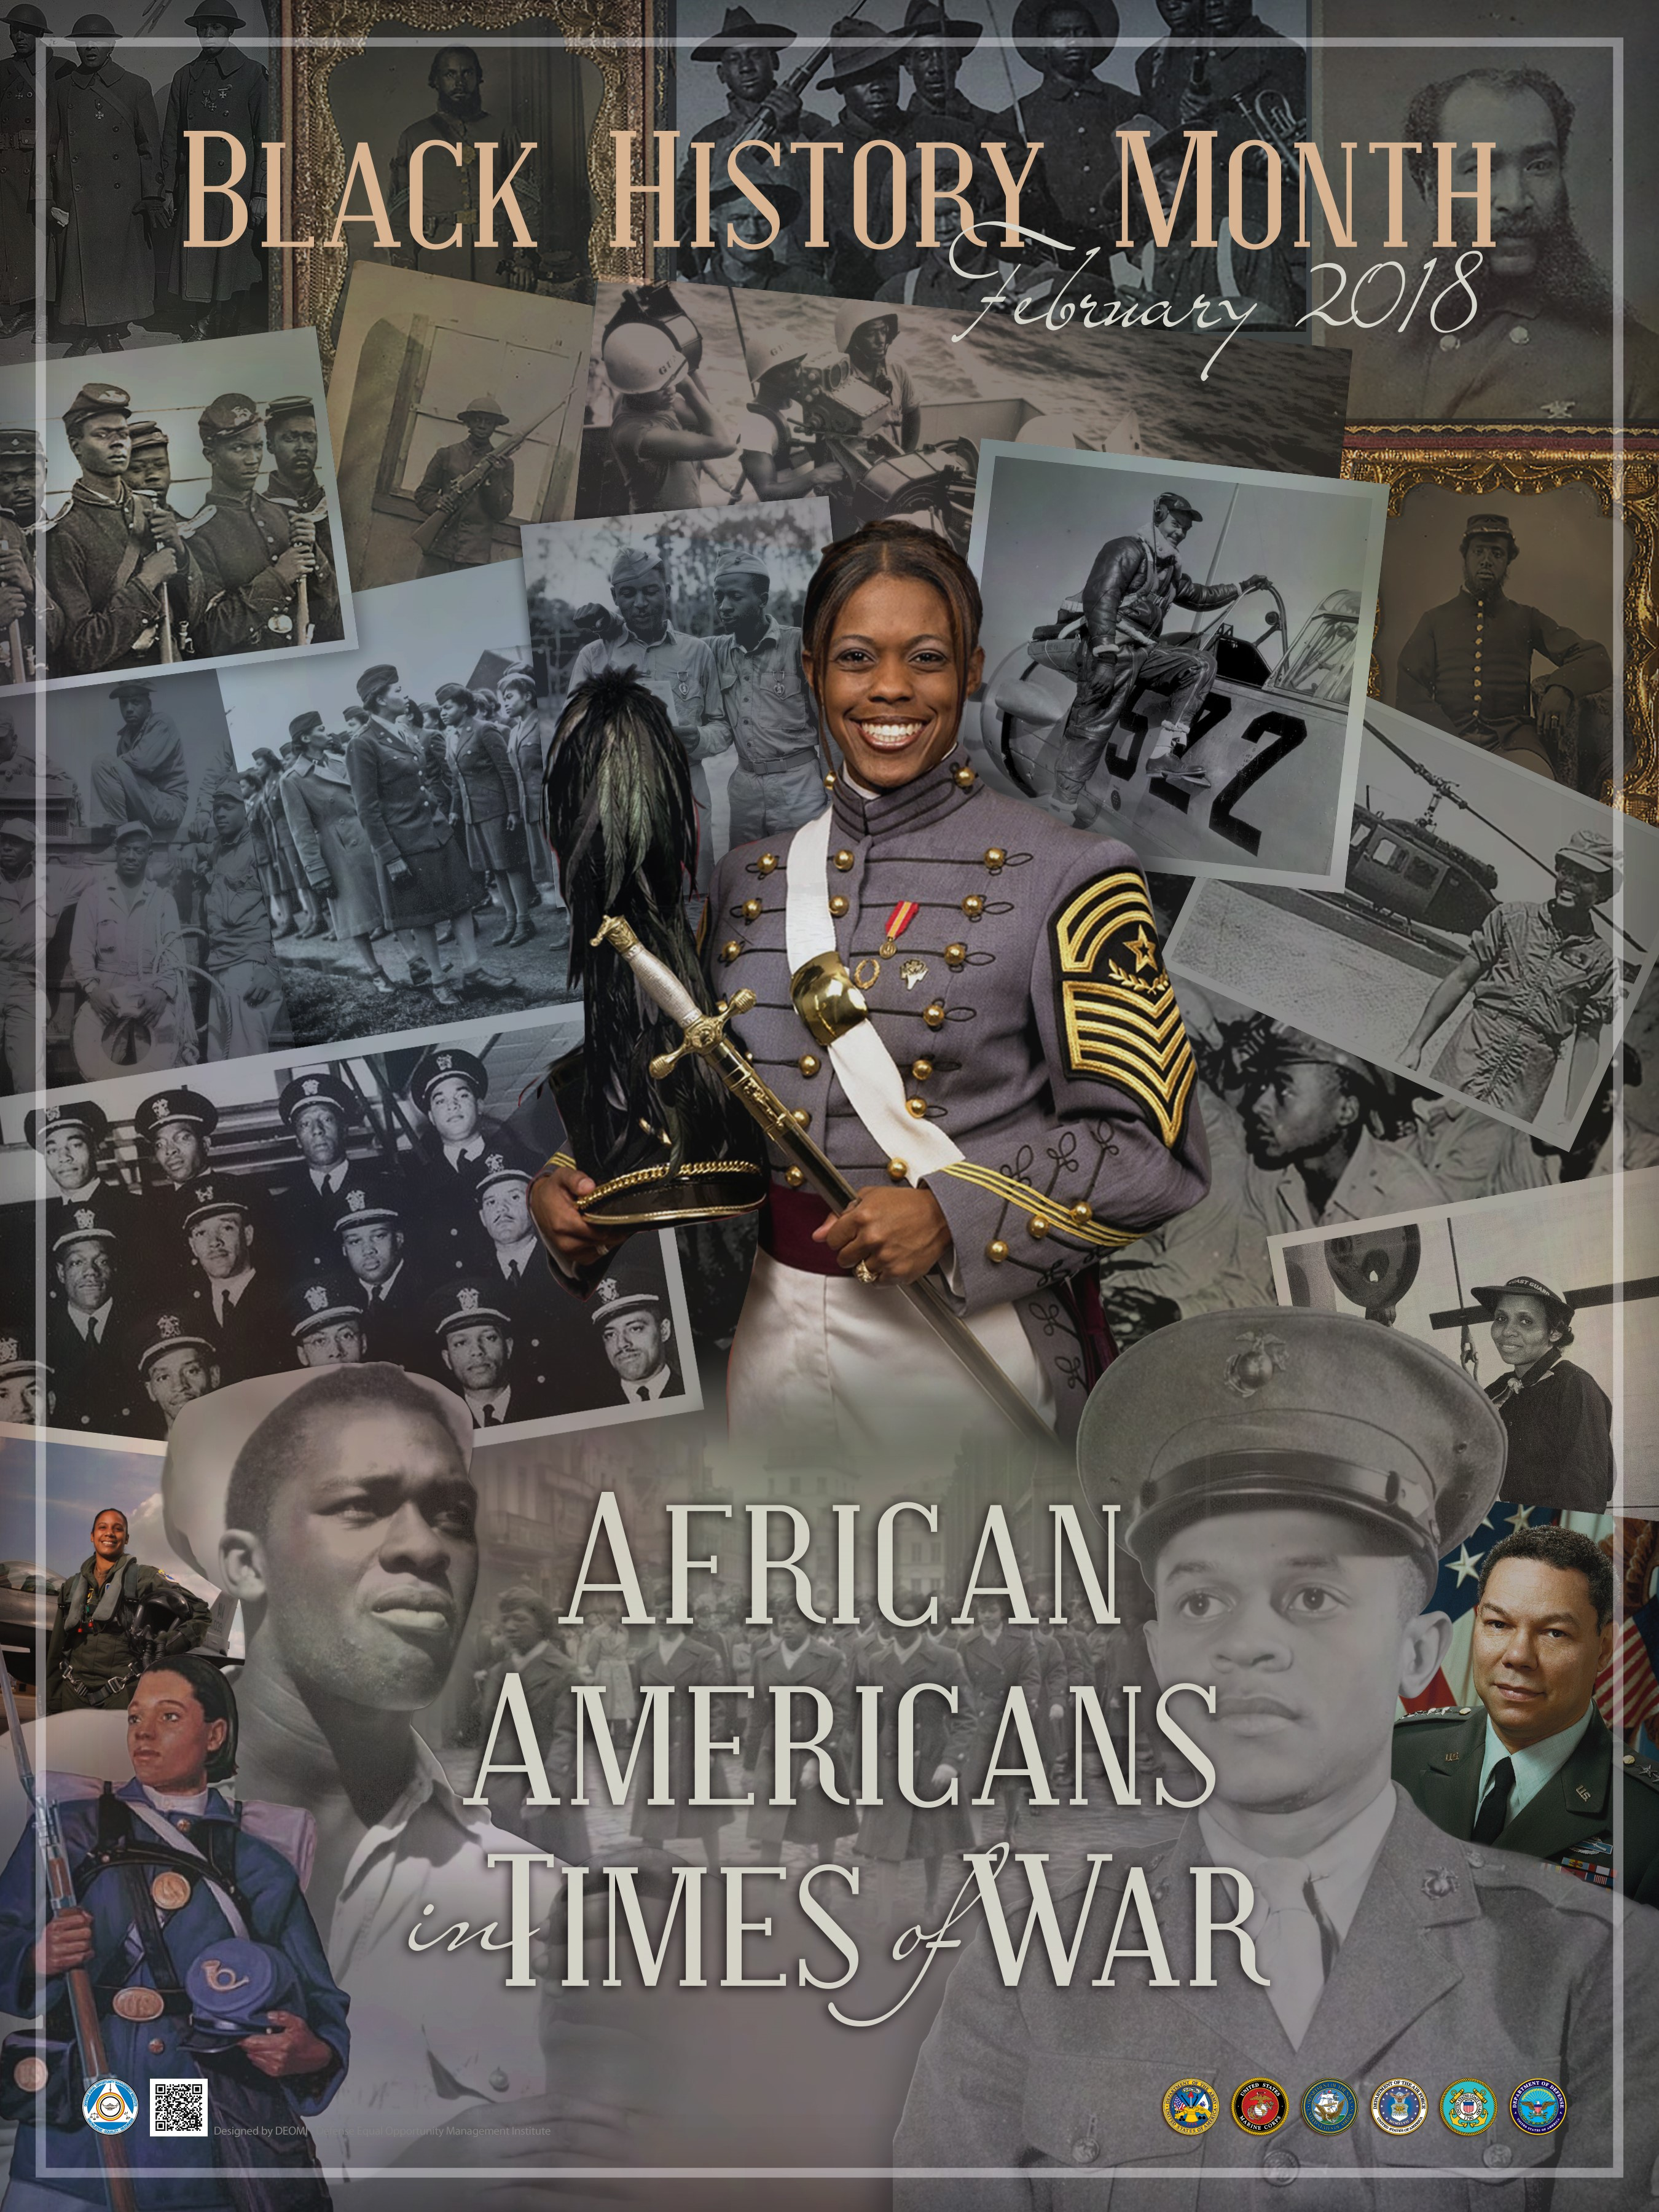 Black History In America On Pinterest: Robins To Celebrate Black History Month 2018 > Robins Air